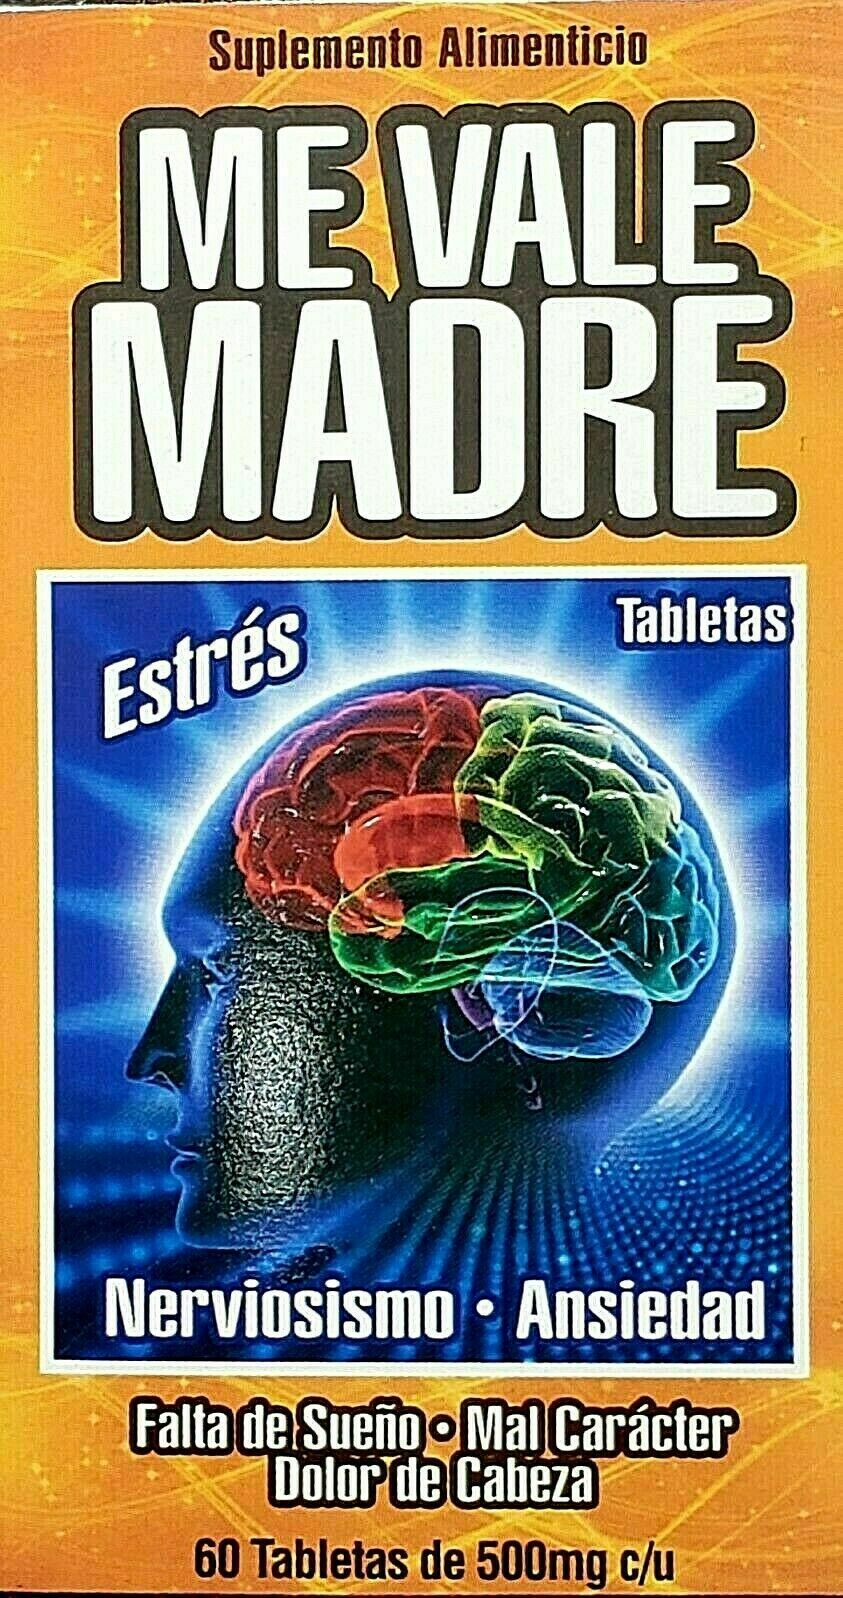 ME VALE MADRE 60 Tablets 500 mg each Support Estres Depresion Ansiedad 7